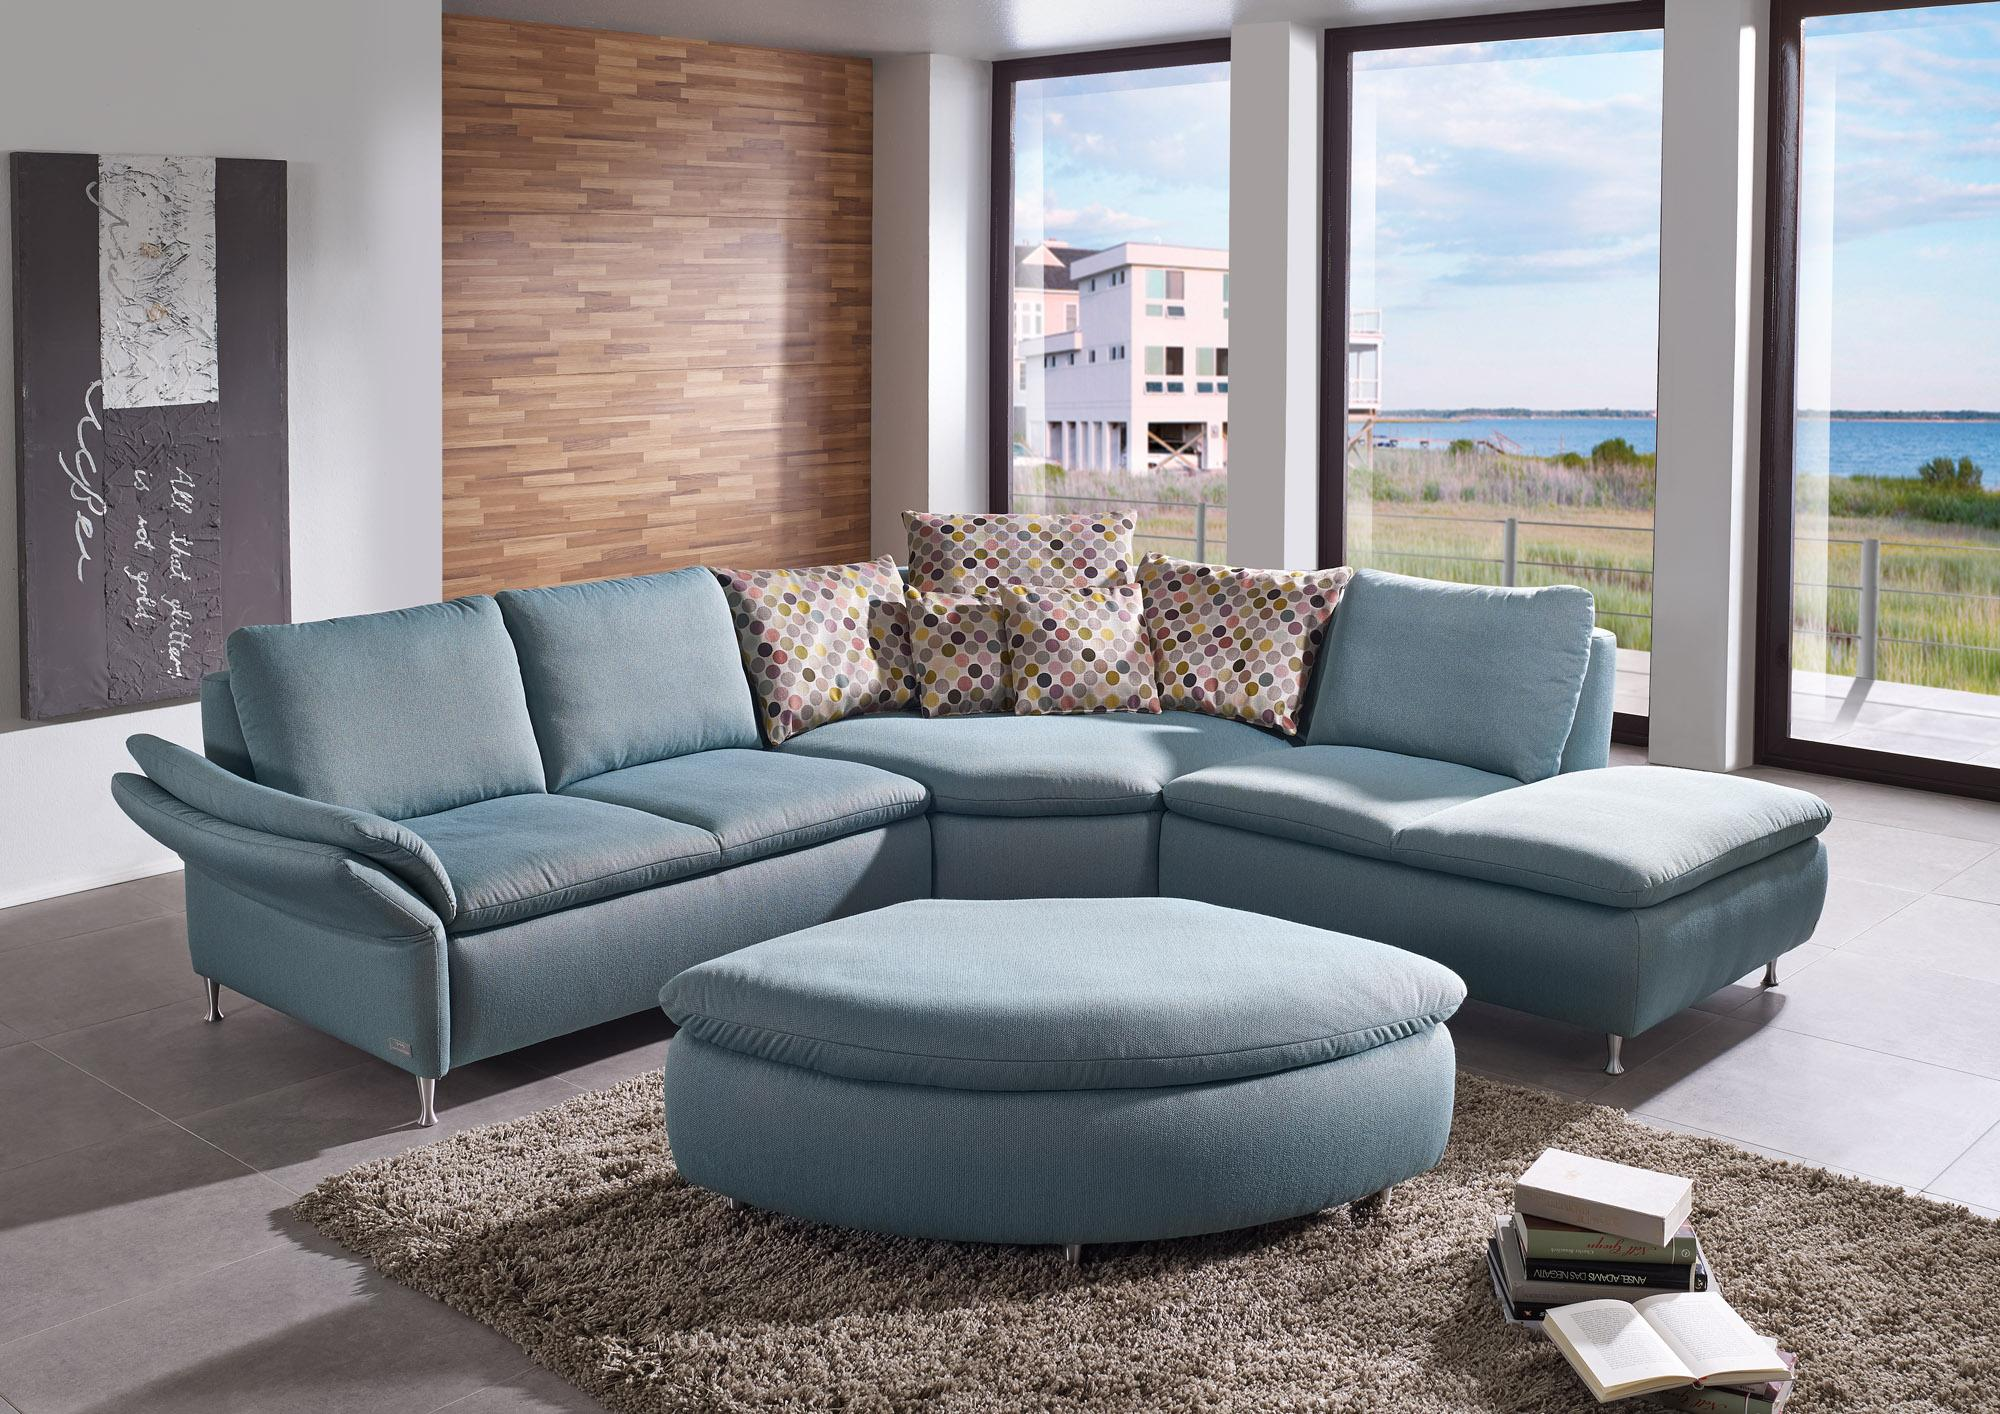 Exquisit Big Sofa Mit Hocker Referenz Von Great Good Modernes Riesiger Rundecke Und Passendem